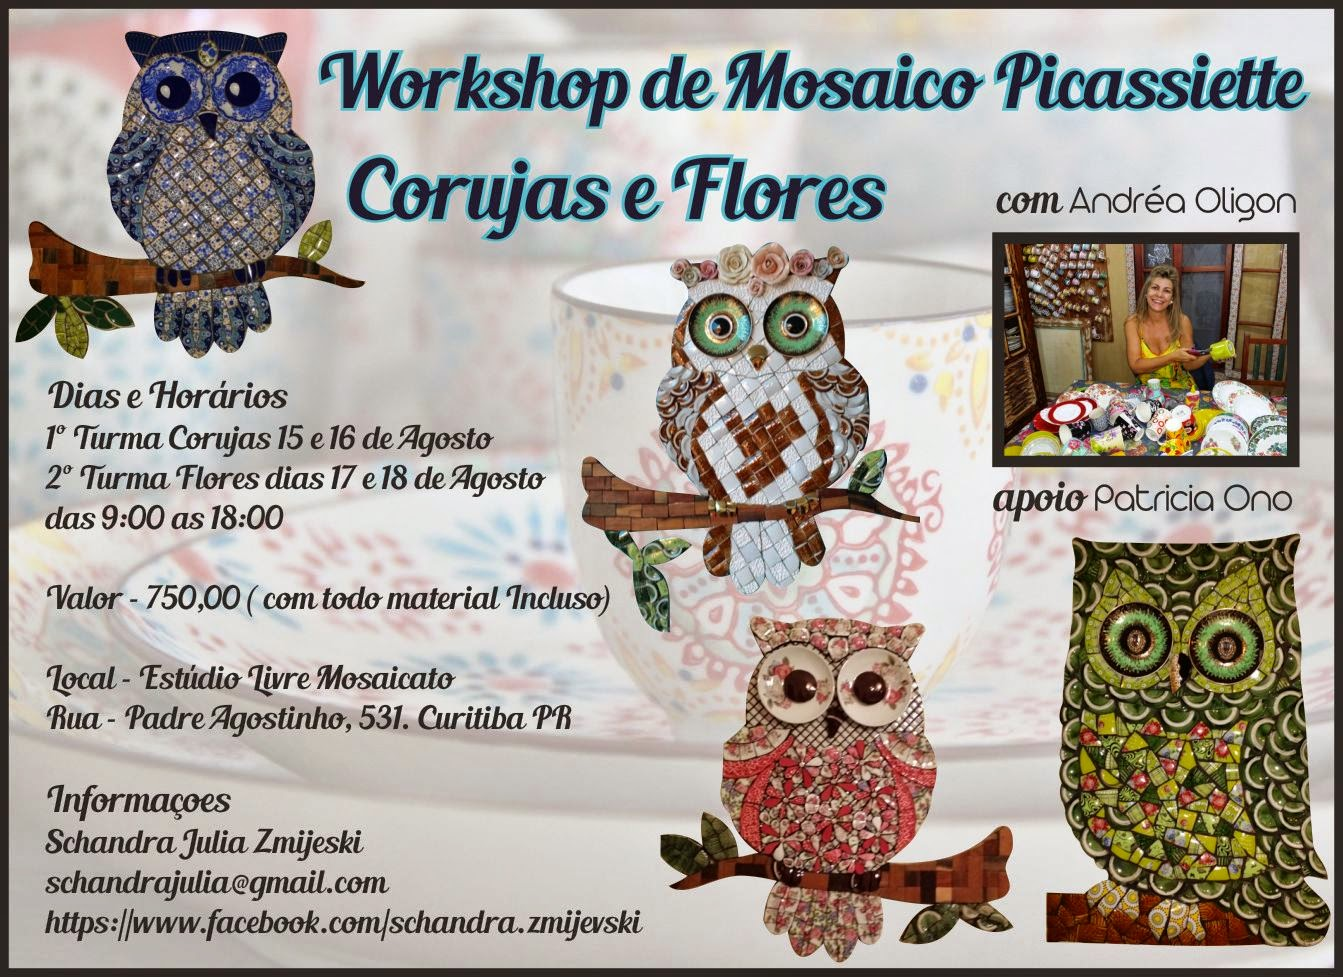 Workshop de Mosaico Picassiette